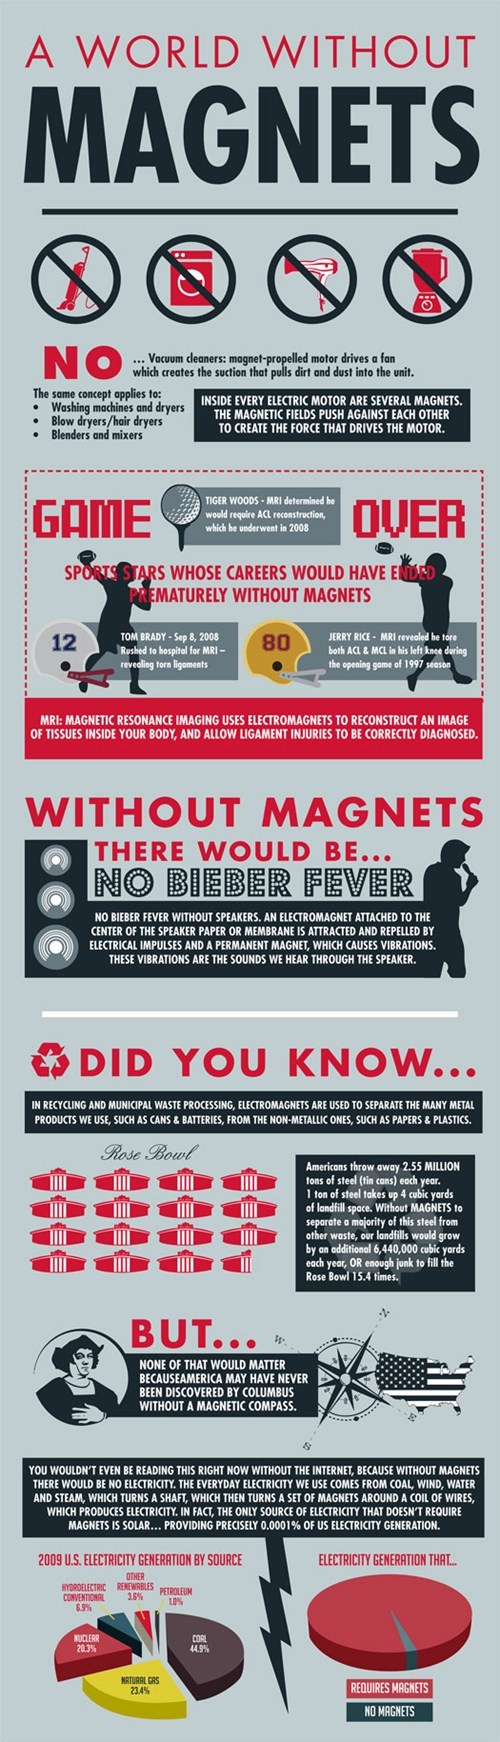 ICP miracles magnets how do they work infographic - 7061521408